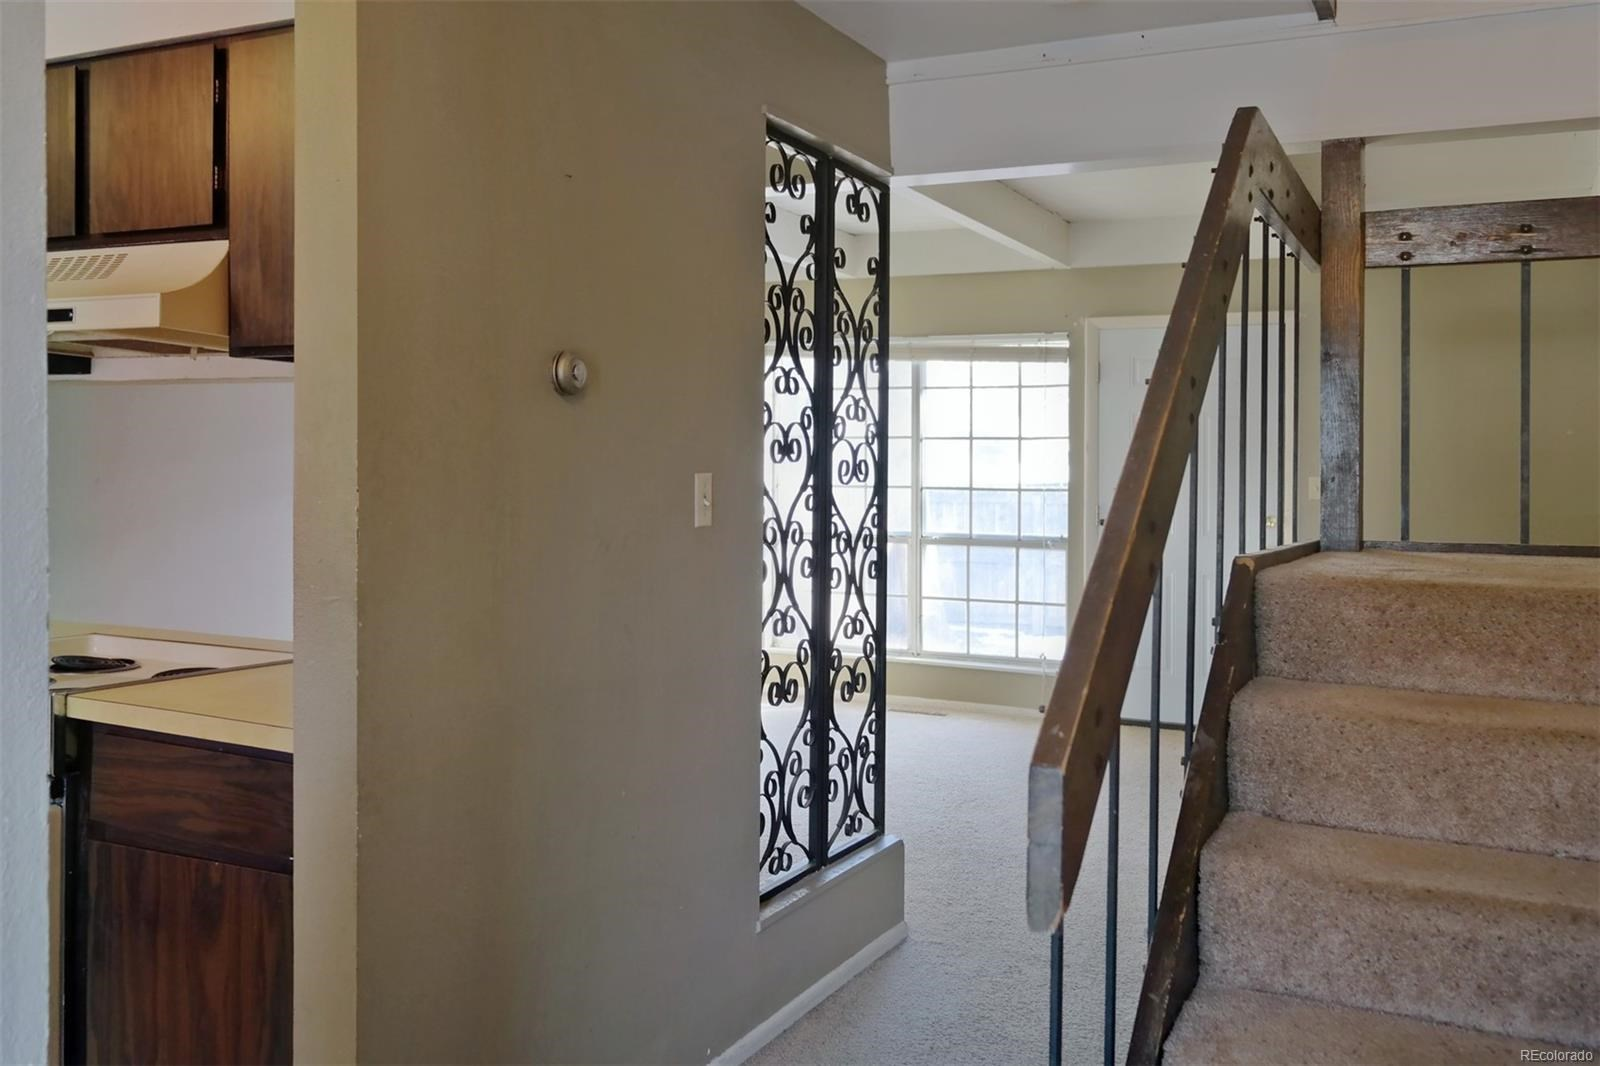 MLS# 5451187 - 5 - 1706 Palm Drive #1, Fort Collins, CO 80526